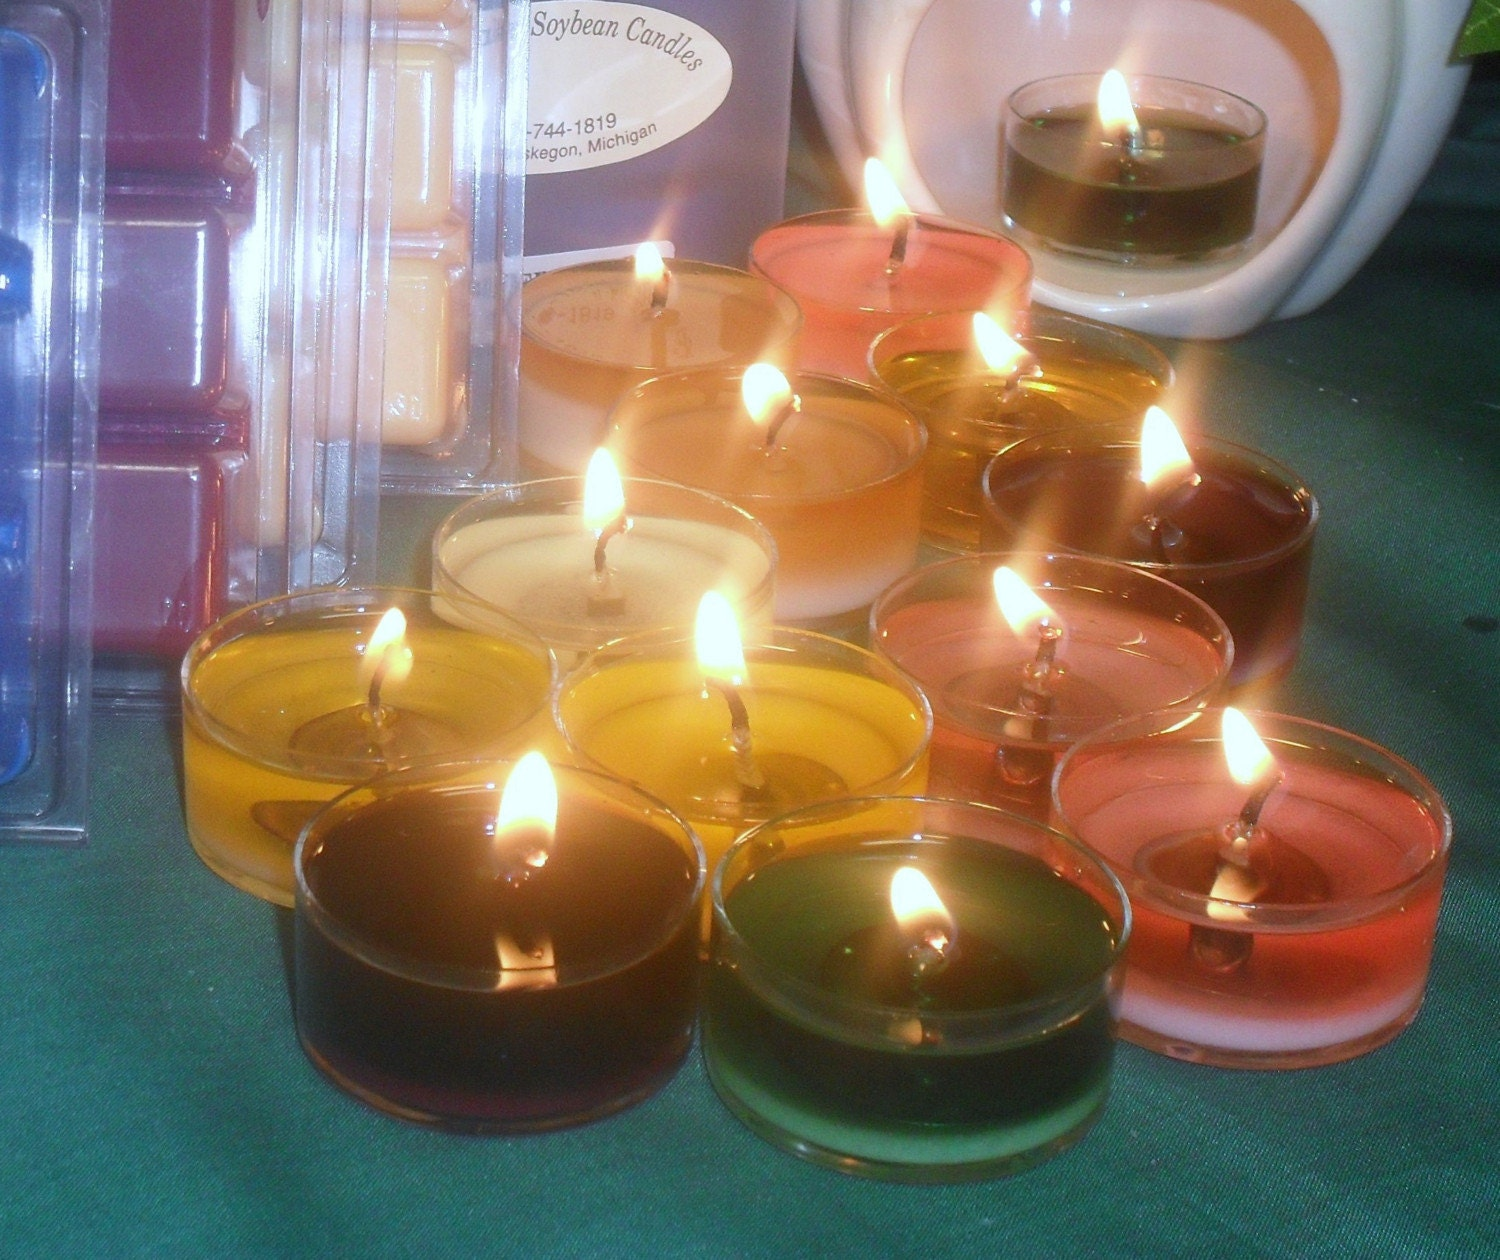 GREAT LAKES SOYBEAN CANDLES 12 T-LITES 6-99 ALL SOY ANY SCENT  BURNTIME 6-8 HOURS EACH